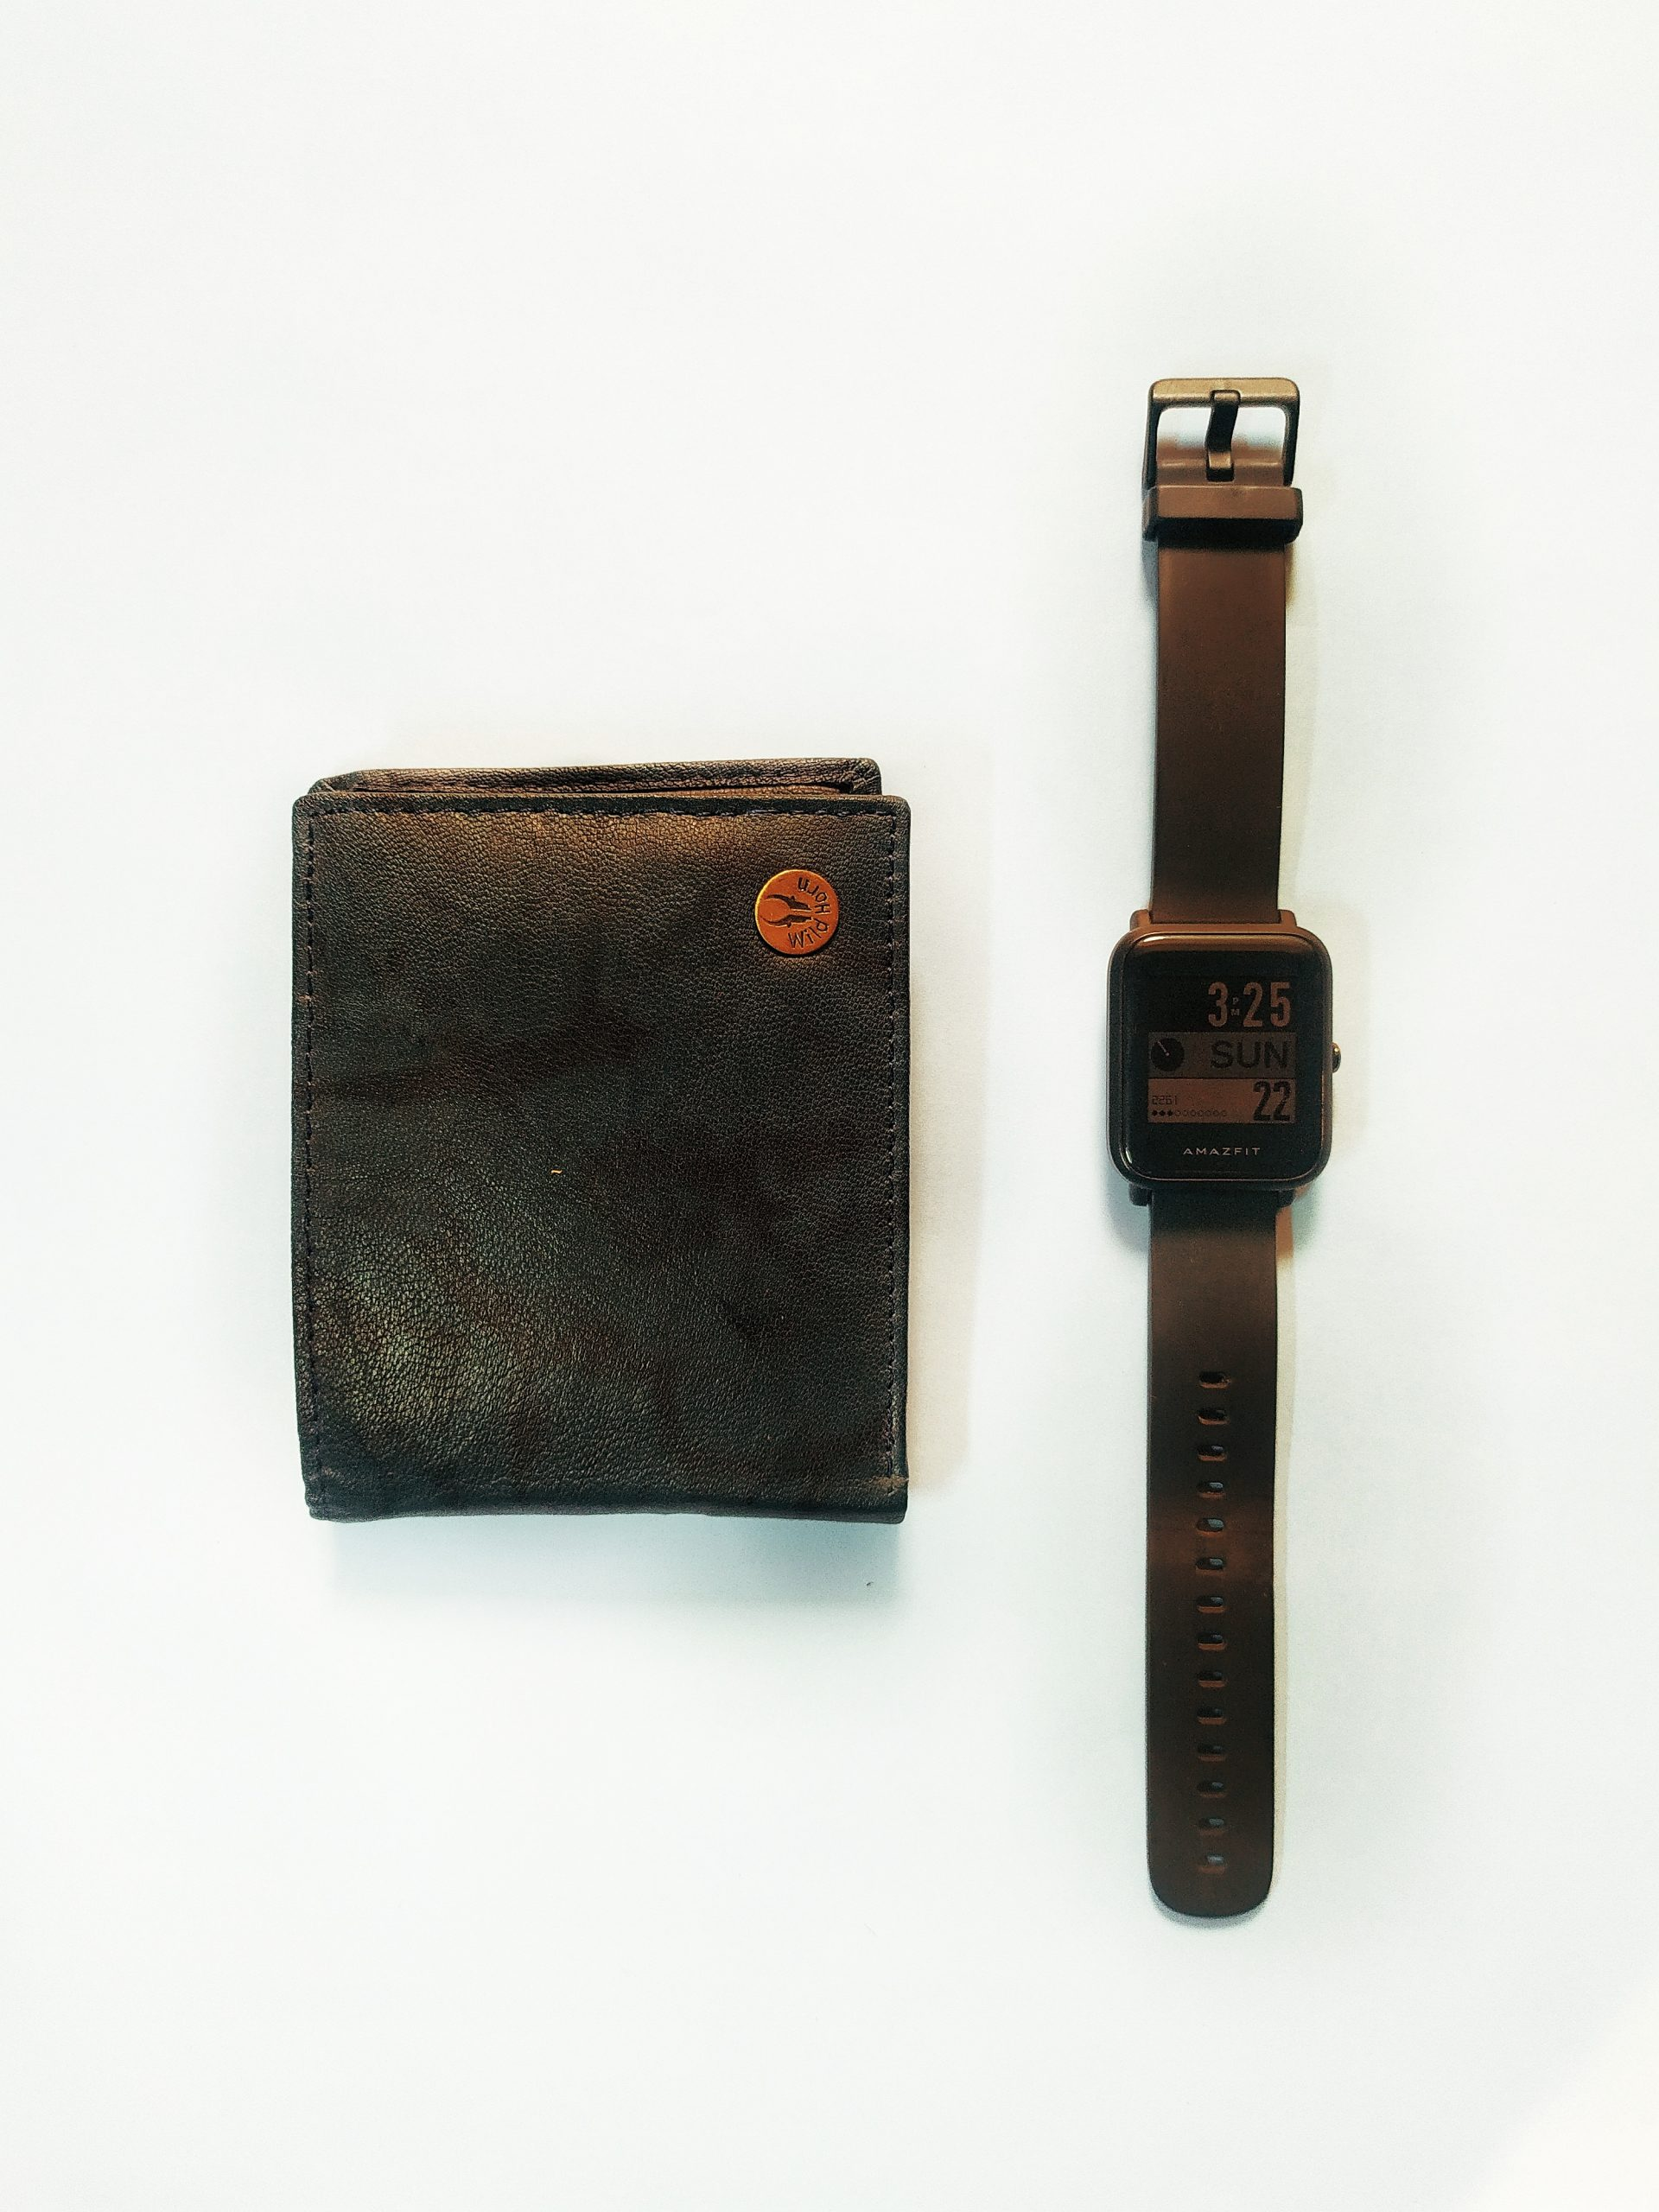 A wallet and watch